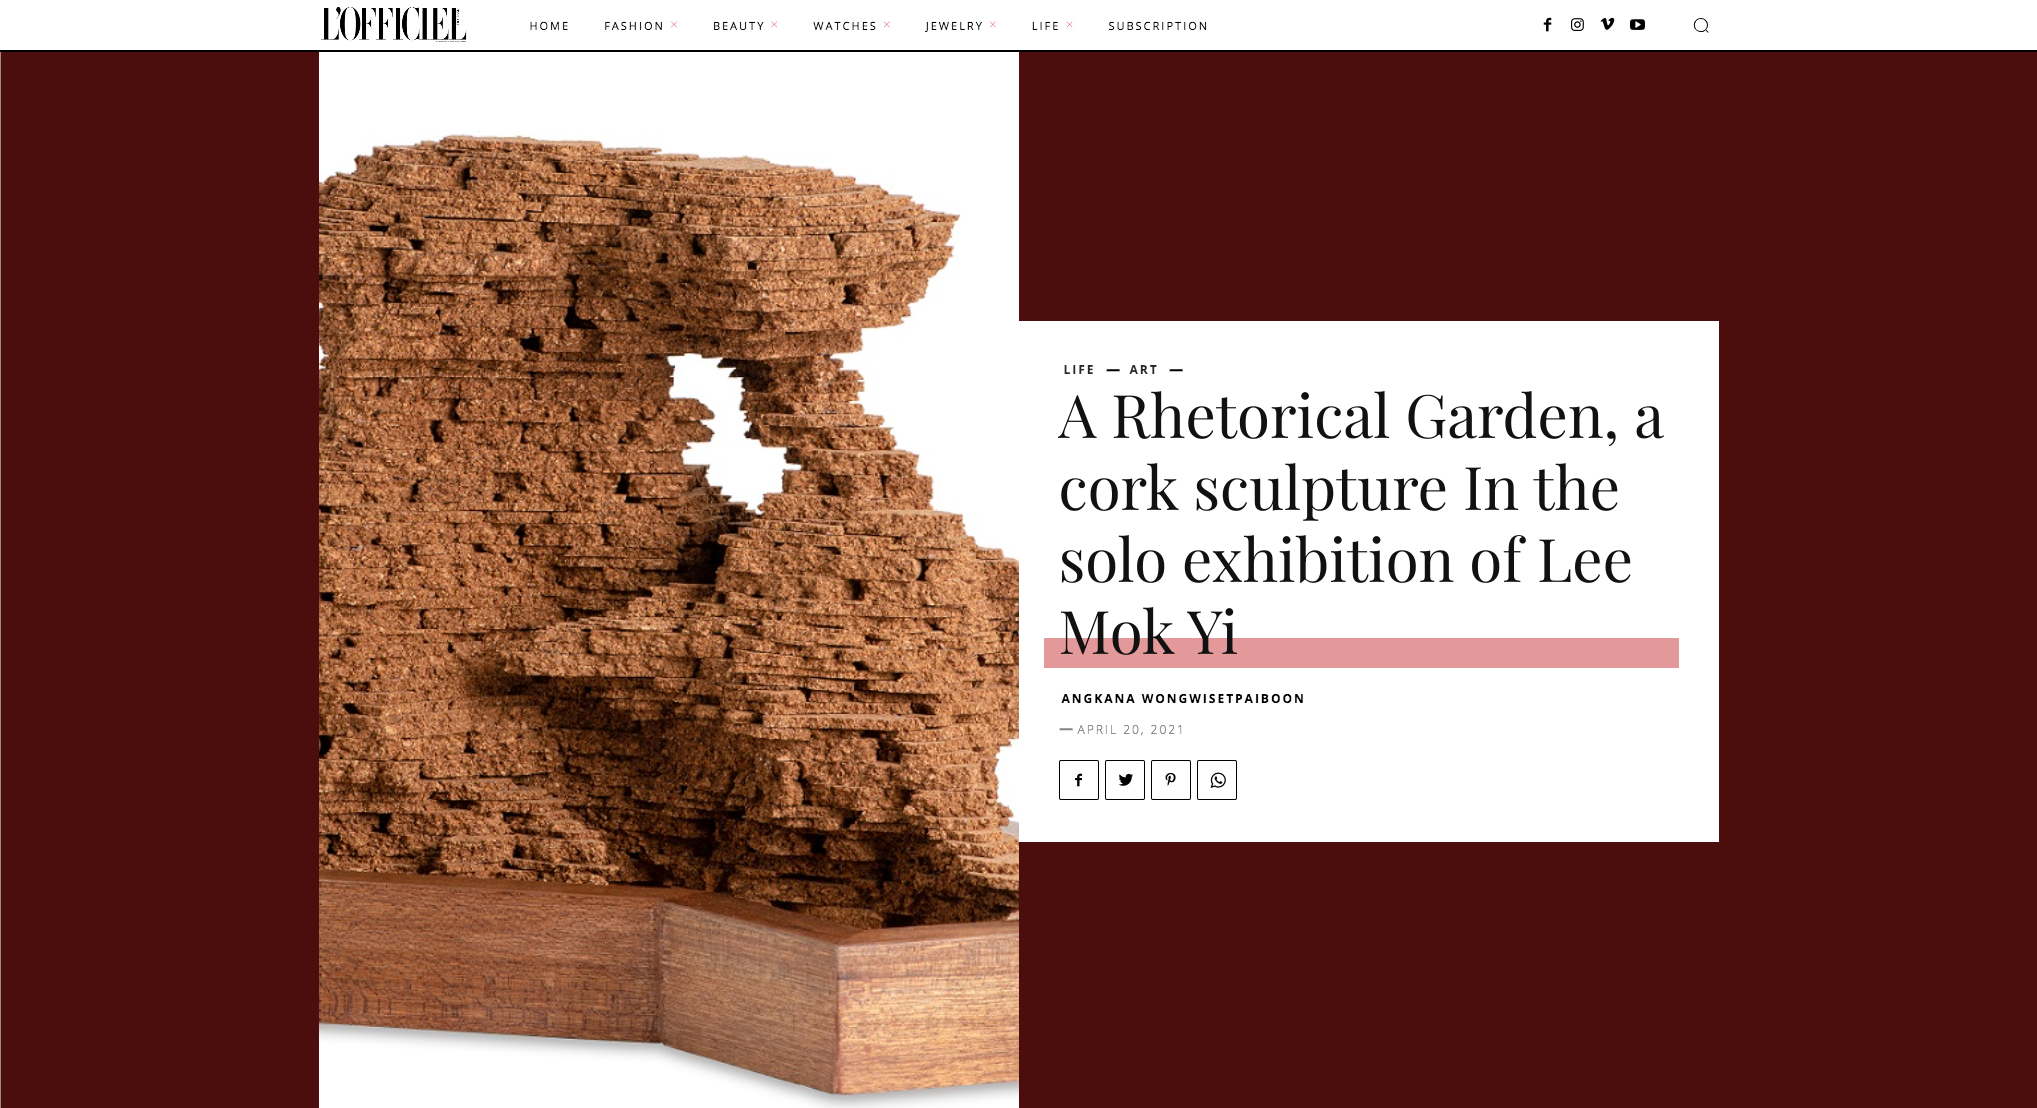 L'Officiel – A Rhetorical Garden, a cork sculpture In the solo exhibition of Lee Mok Yi